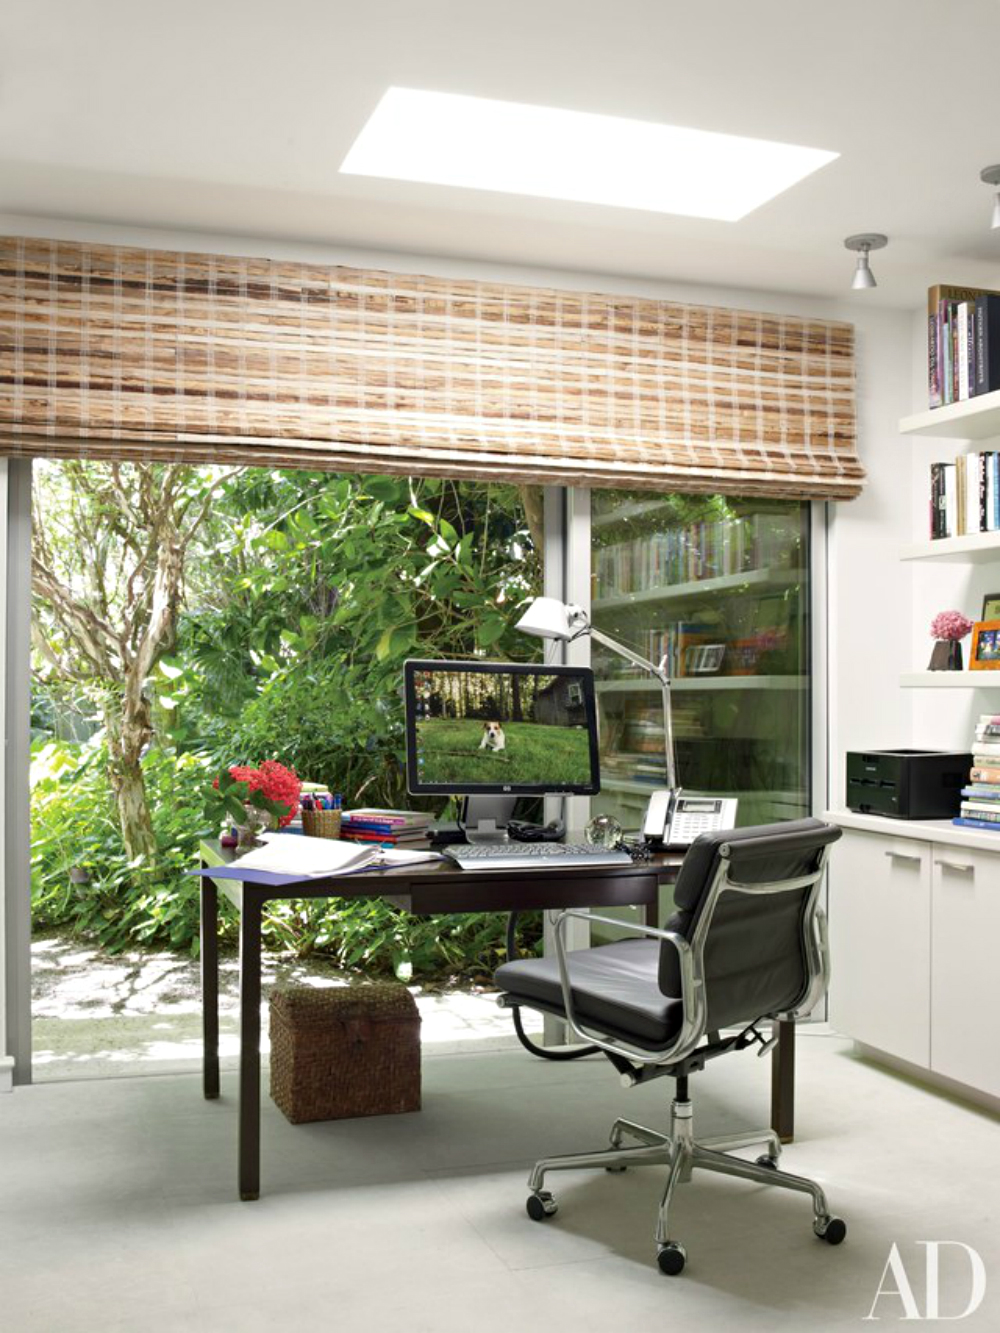 10 Home Office Design Ideas You Should Get Inspired By home office design 10 Home Office Design Ideas You Should Get Inspired By 10 Home Office Design Ideas You Should Get Inspired By large windows 1